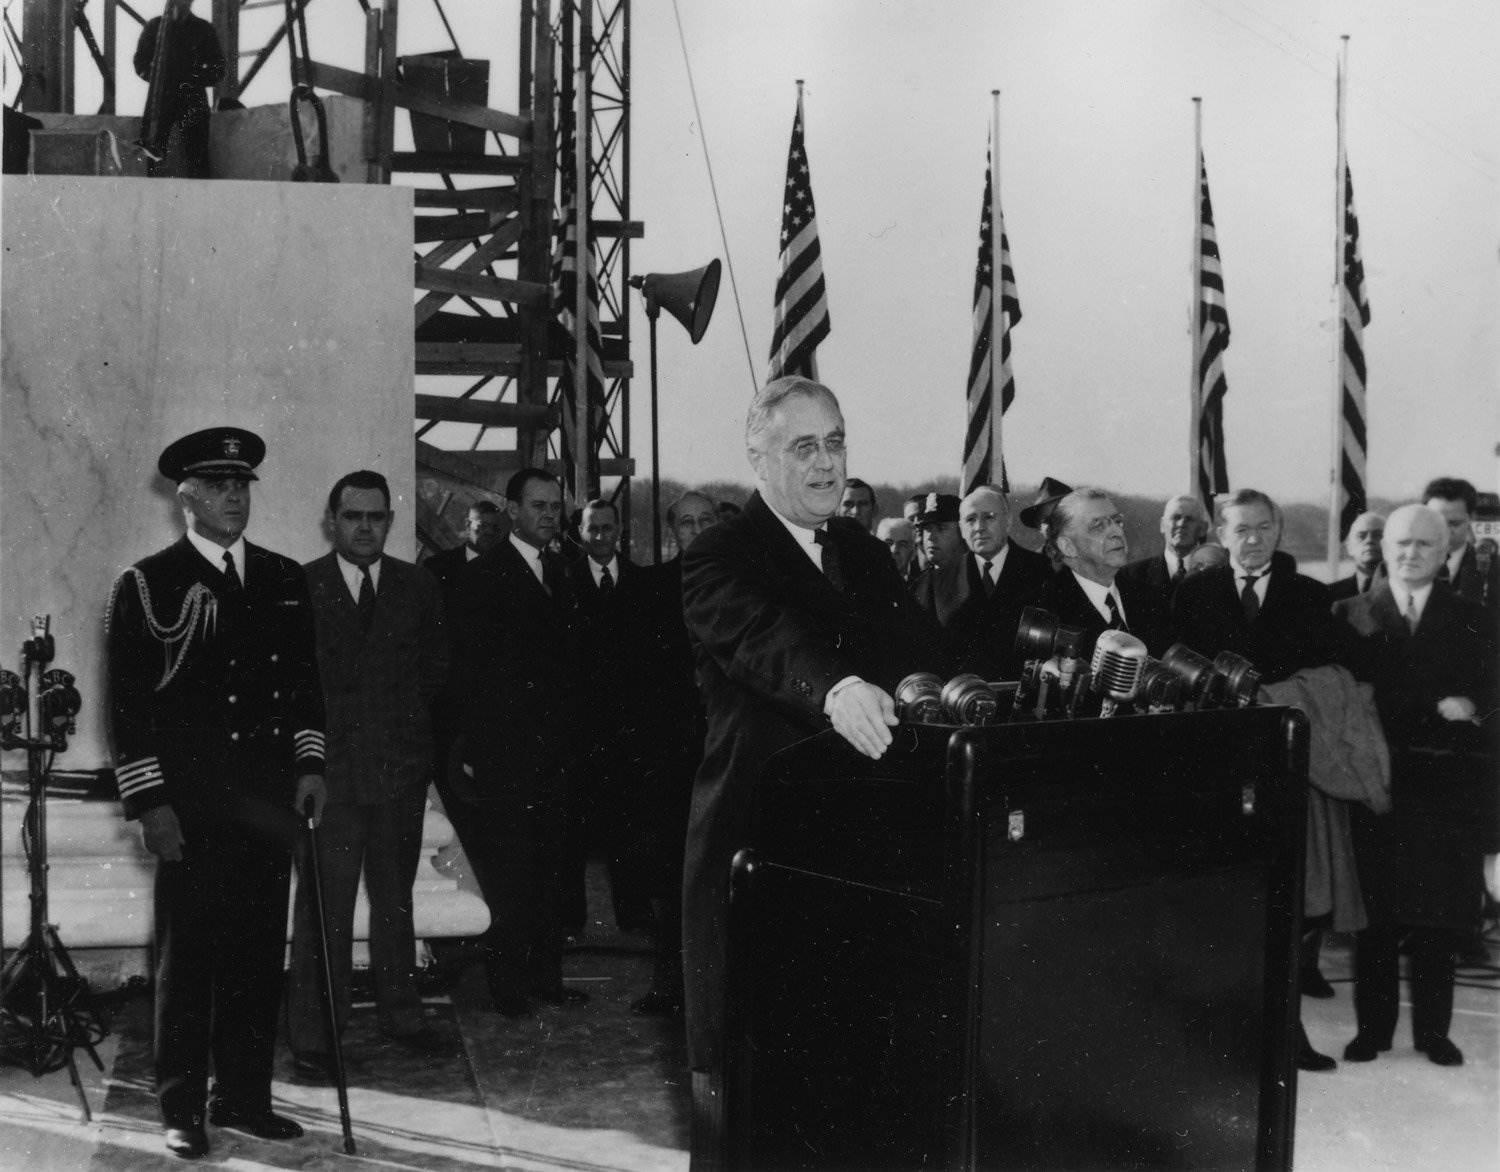 Franklin D. Roosevelt at The Jefferson Memorial cornerstone laying